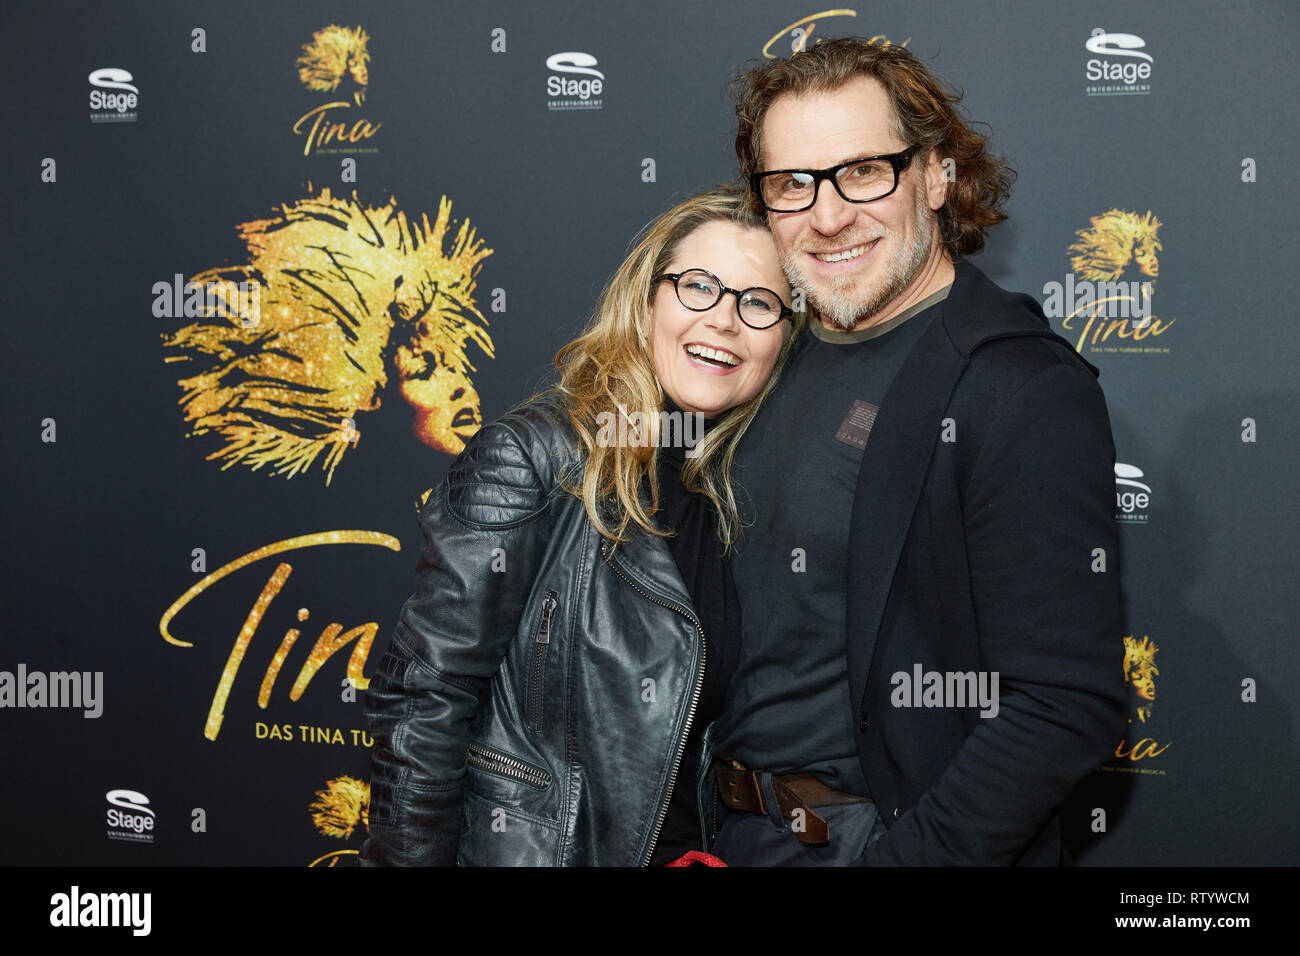 "Hamburg, Germany. 03rd Mar, 2019. Michaela Schaffrath, actress, and Carlos Anthonyo come to the German premiere of the musical ""Tina - Das Tina Turner Musical"" at the Operettenhaus. Credit: Georg Wendt/dpa/Alamy Live News Stock Photo"